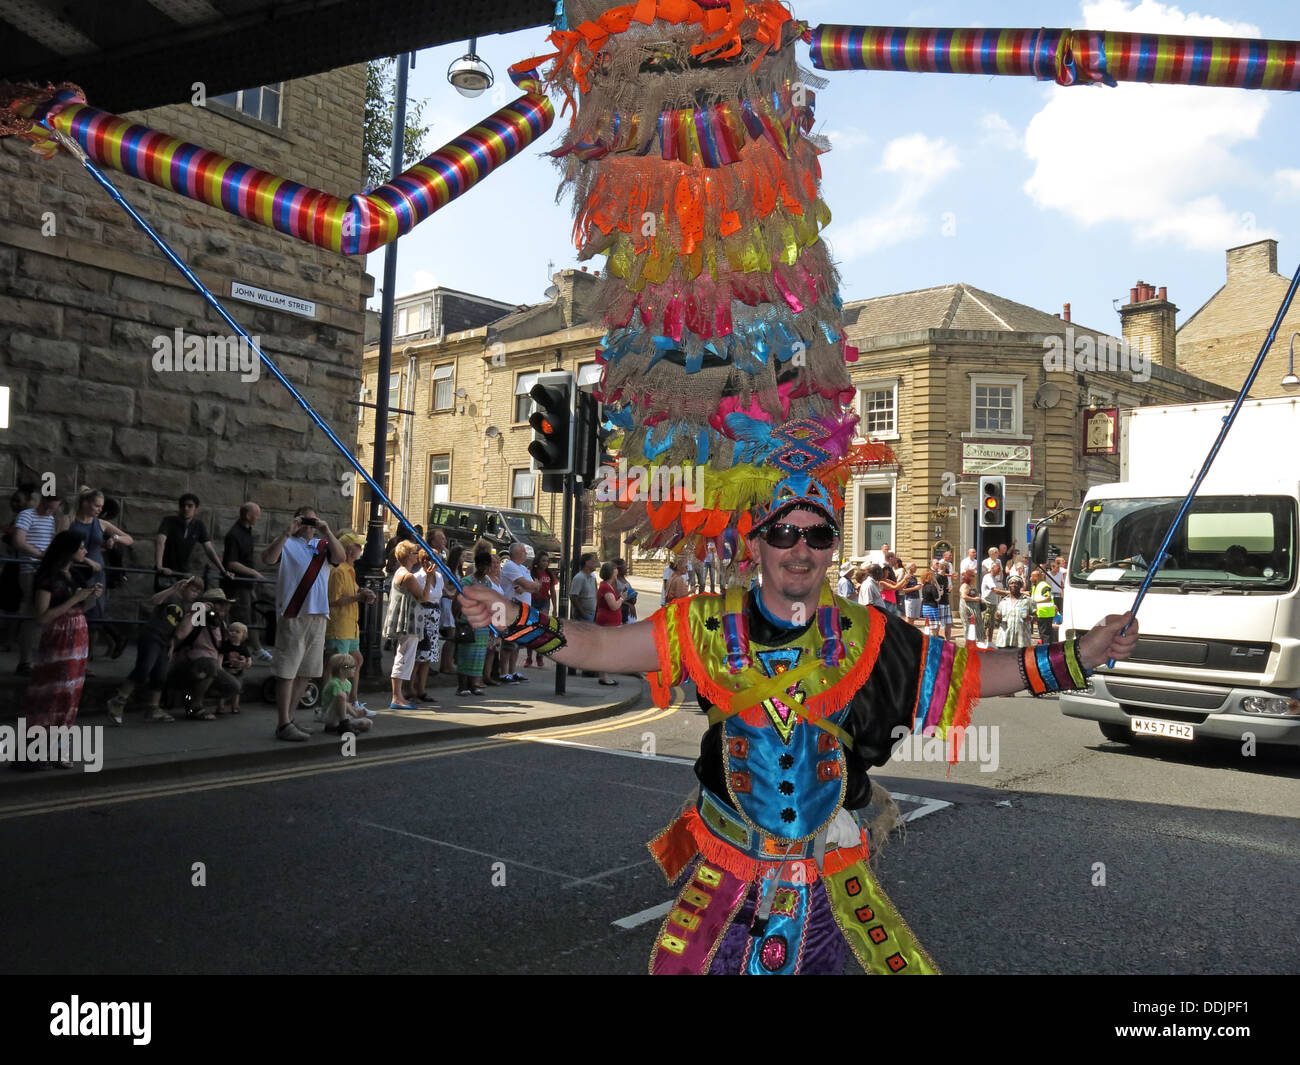 Kirklees,council,local,authority,LA,West,Yorkshire,England,English,UK,GB,Great,Britain,British,town,centre,Saturday,13th,July,event,HACCT,office,African-Caribbean,African,Caribbean,Afro,dancer,dancers,Masqueraders,costume,colourful,Hudawi,trust,diversity,diverse,events,leisure,activities,under,Gotonysmith,sun,sunny,day,summer,center,13/07/2013,Greenhead,Park,Afro-Caribbean,costumes,colorful,culture,cultural,streets,parades,jab,jabs,jab-jabs,St,Johns,Rd,from,Willow,Lane,to,John,William,St,Johns,Rd,Market,Place,Cloth,Hall,St,from,Market,Place,to,St,from,Cloth,Hall,St,to,Westgate,from,to,Trinity,St,johns,Yorks,WestYorks,HD11NU,1NU,bridge,Buy Pictures of,Buy Images Of